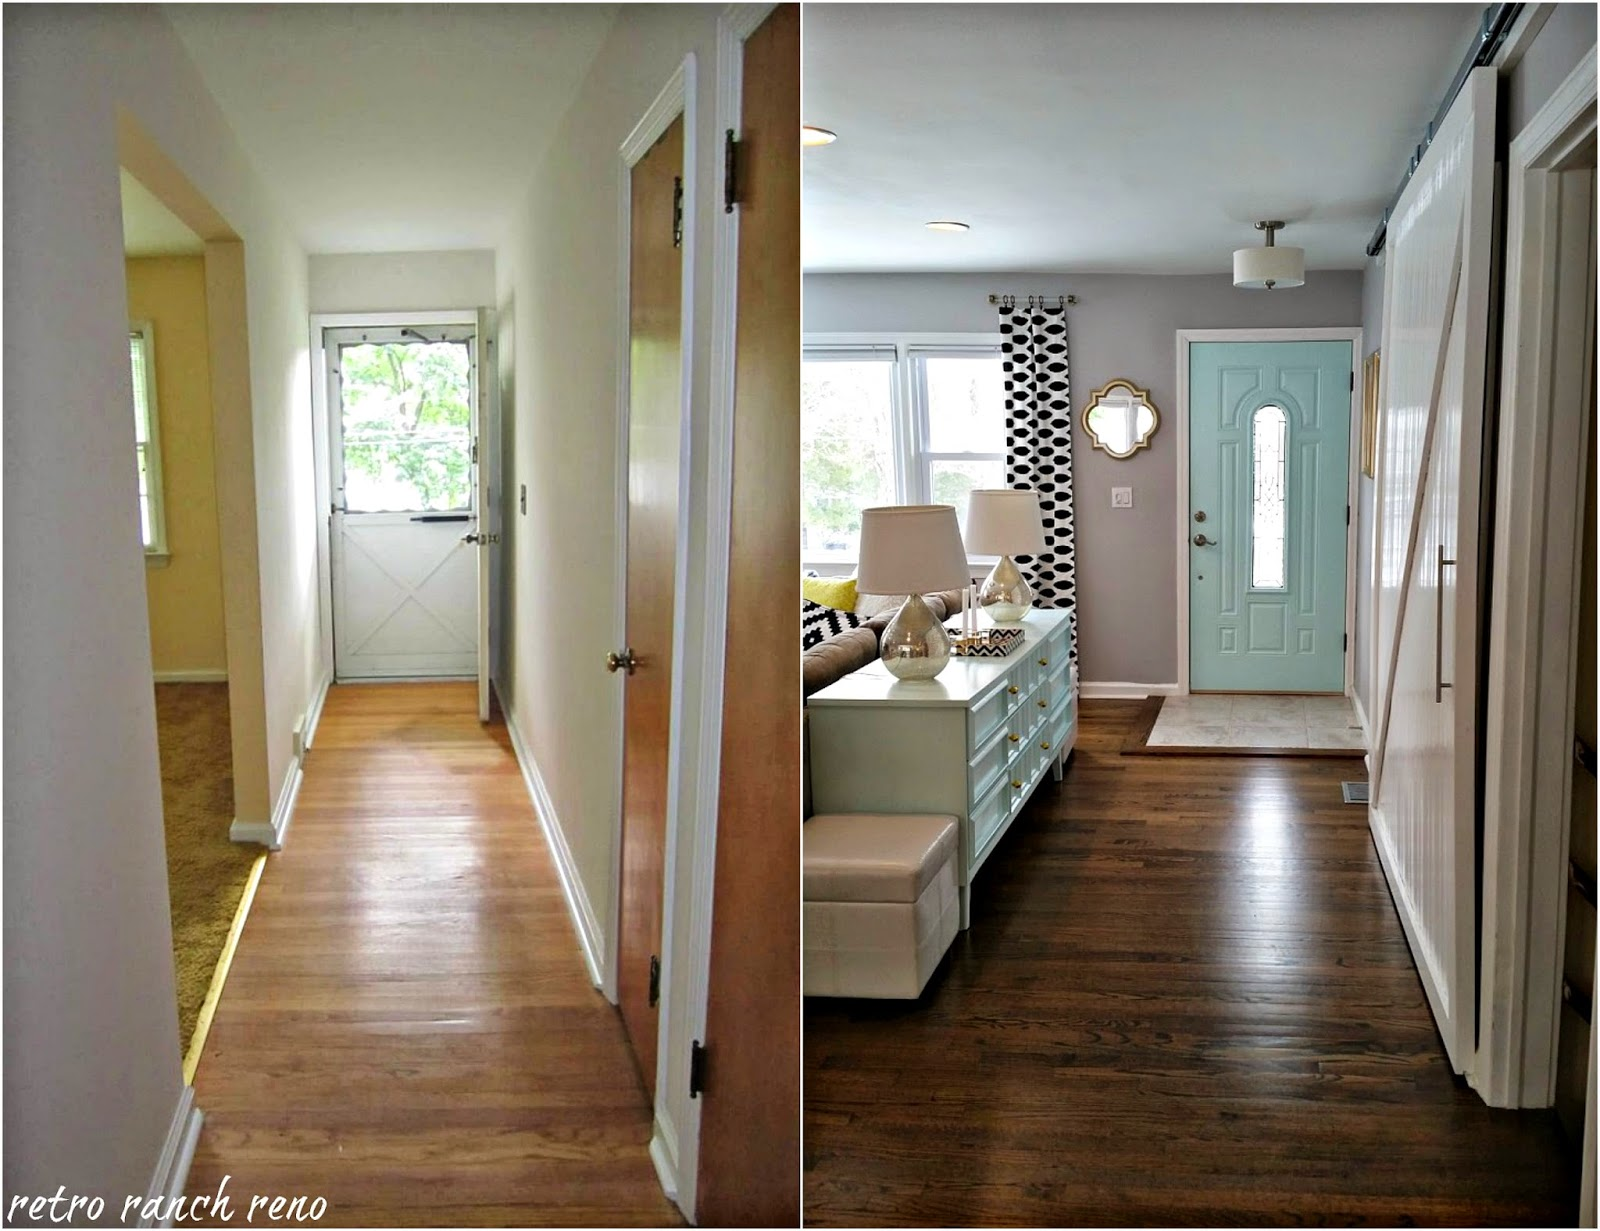 Retro ranch reno our rancher before after the entrance Before and after interior design projects